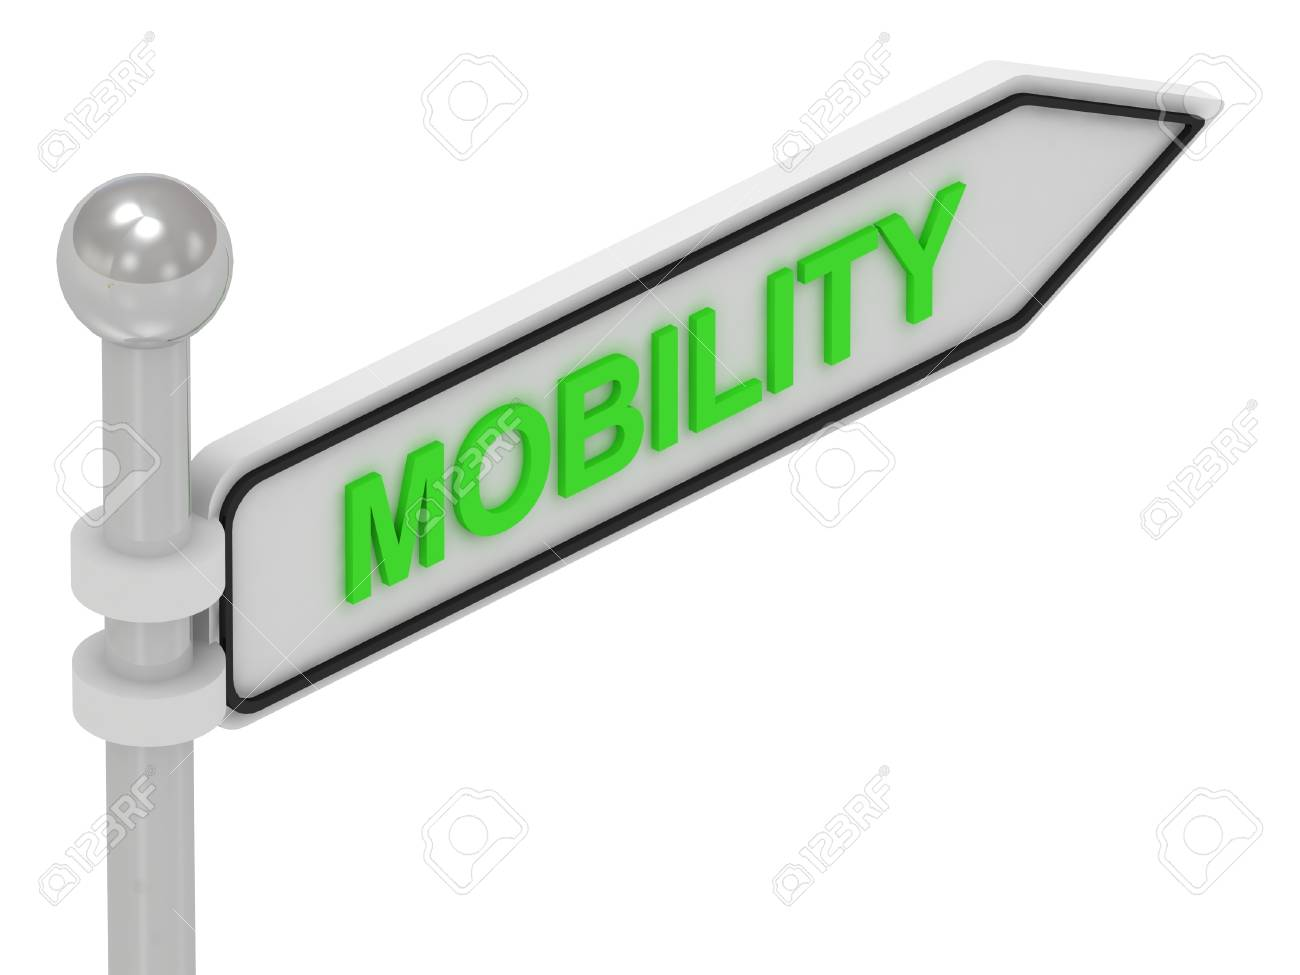 MOBILITY arrow sign with letters on isolated white background Stock Photo - 14615354